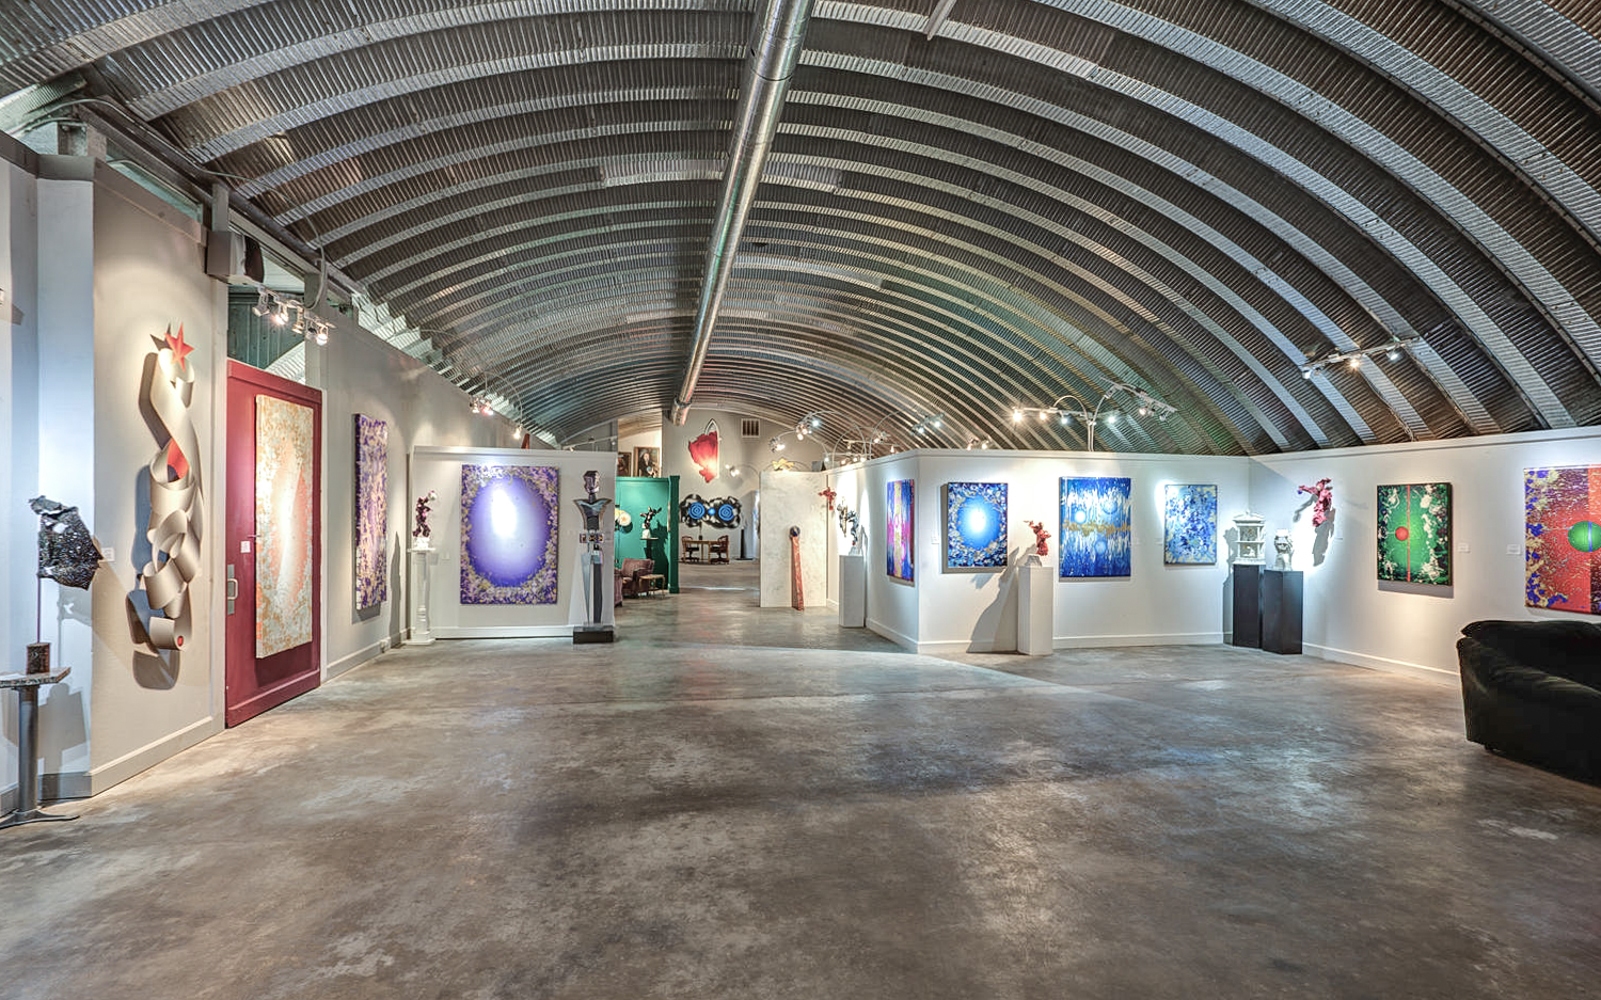 Beninis transformed the 12,000-square-foot hangar on the property into an art gallery. (Image courtesy of Coldwell Banker)